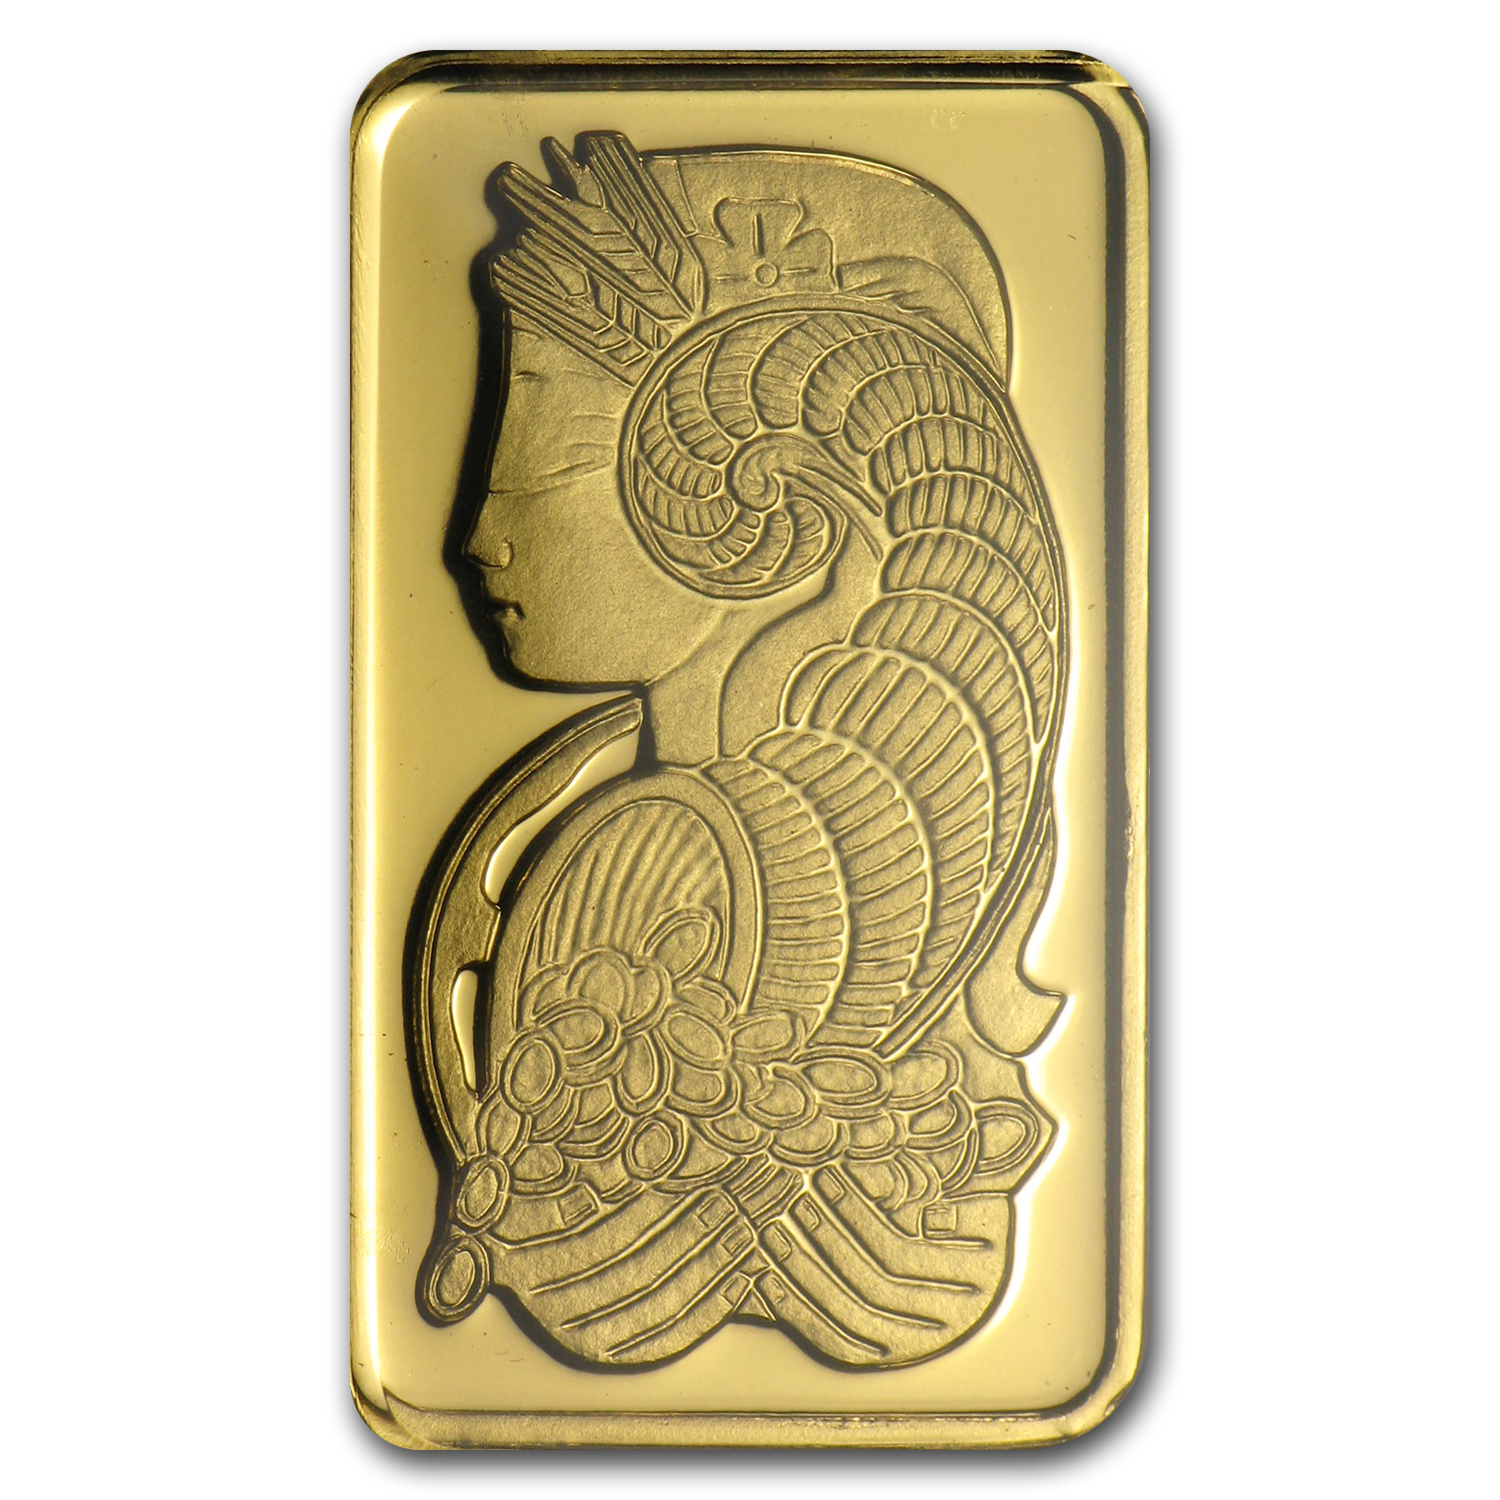 5 gram Gold Bars - Pamp Suisse (In Assay)